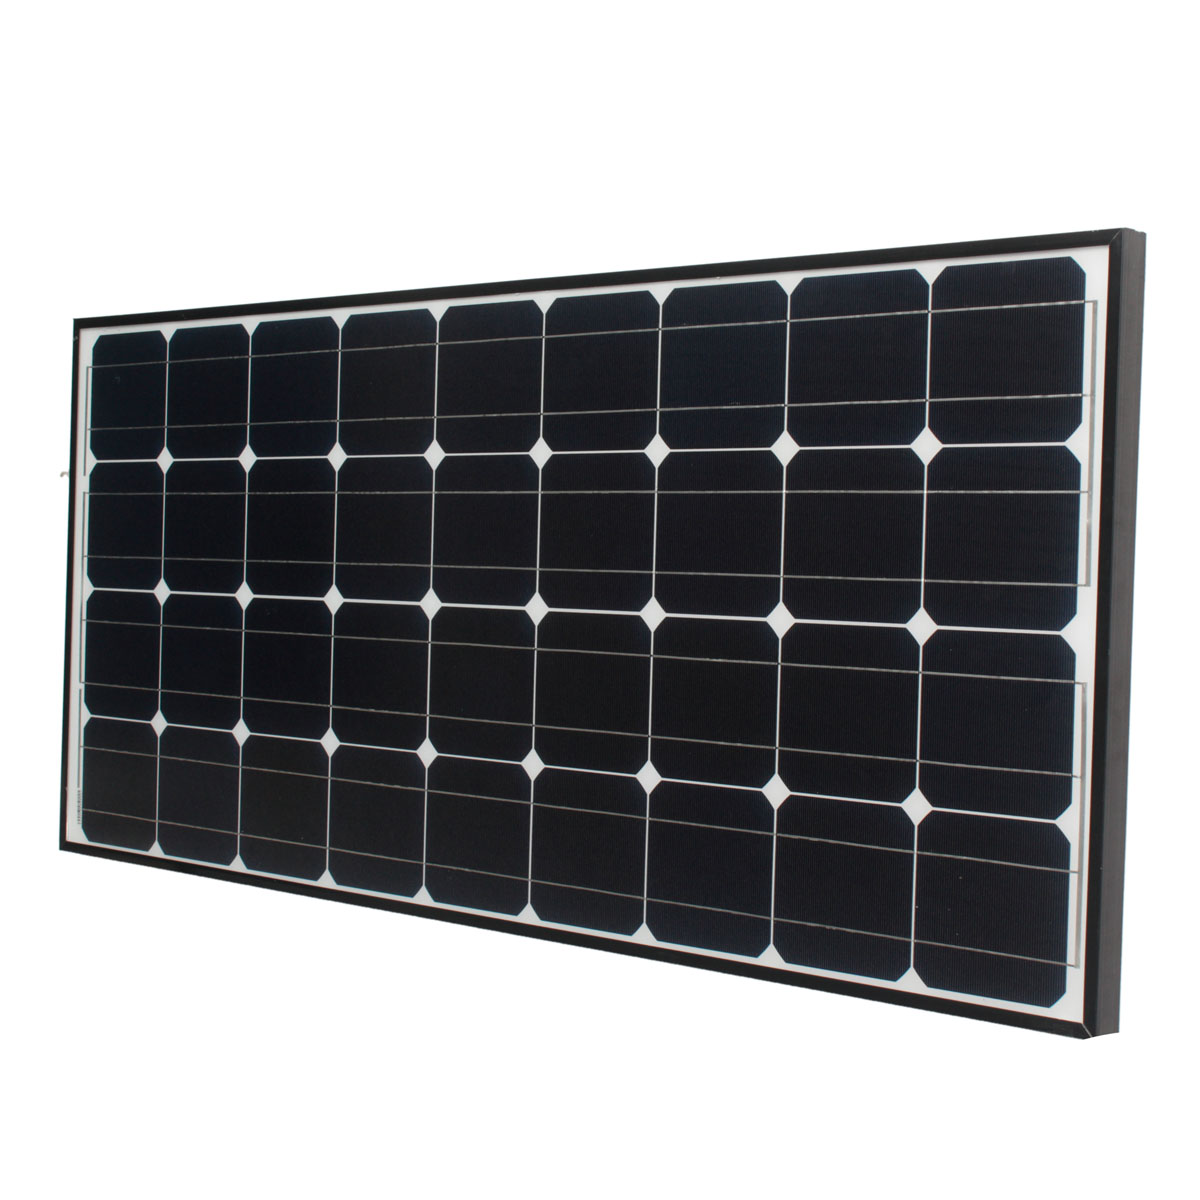 KINCO High Conversion Efficiency 50w 18v Monocrystalline Silicon Solar Panels DIY Steady Housing Solar Power Battery sp 36 120w 12v semi flexible monocrystalline solar panel waterproof high conversion efficiency for rv boat car 1 5m cable